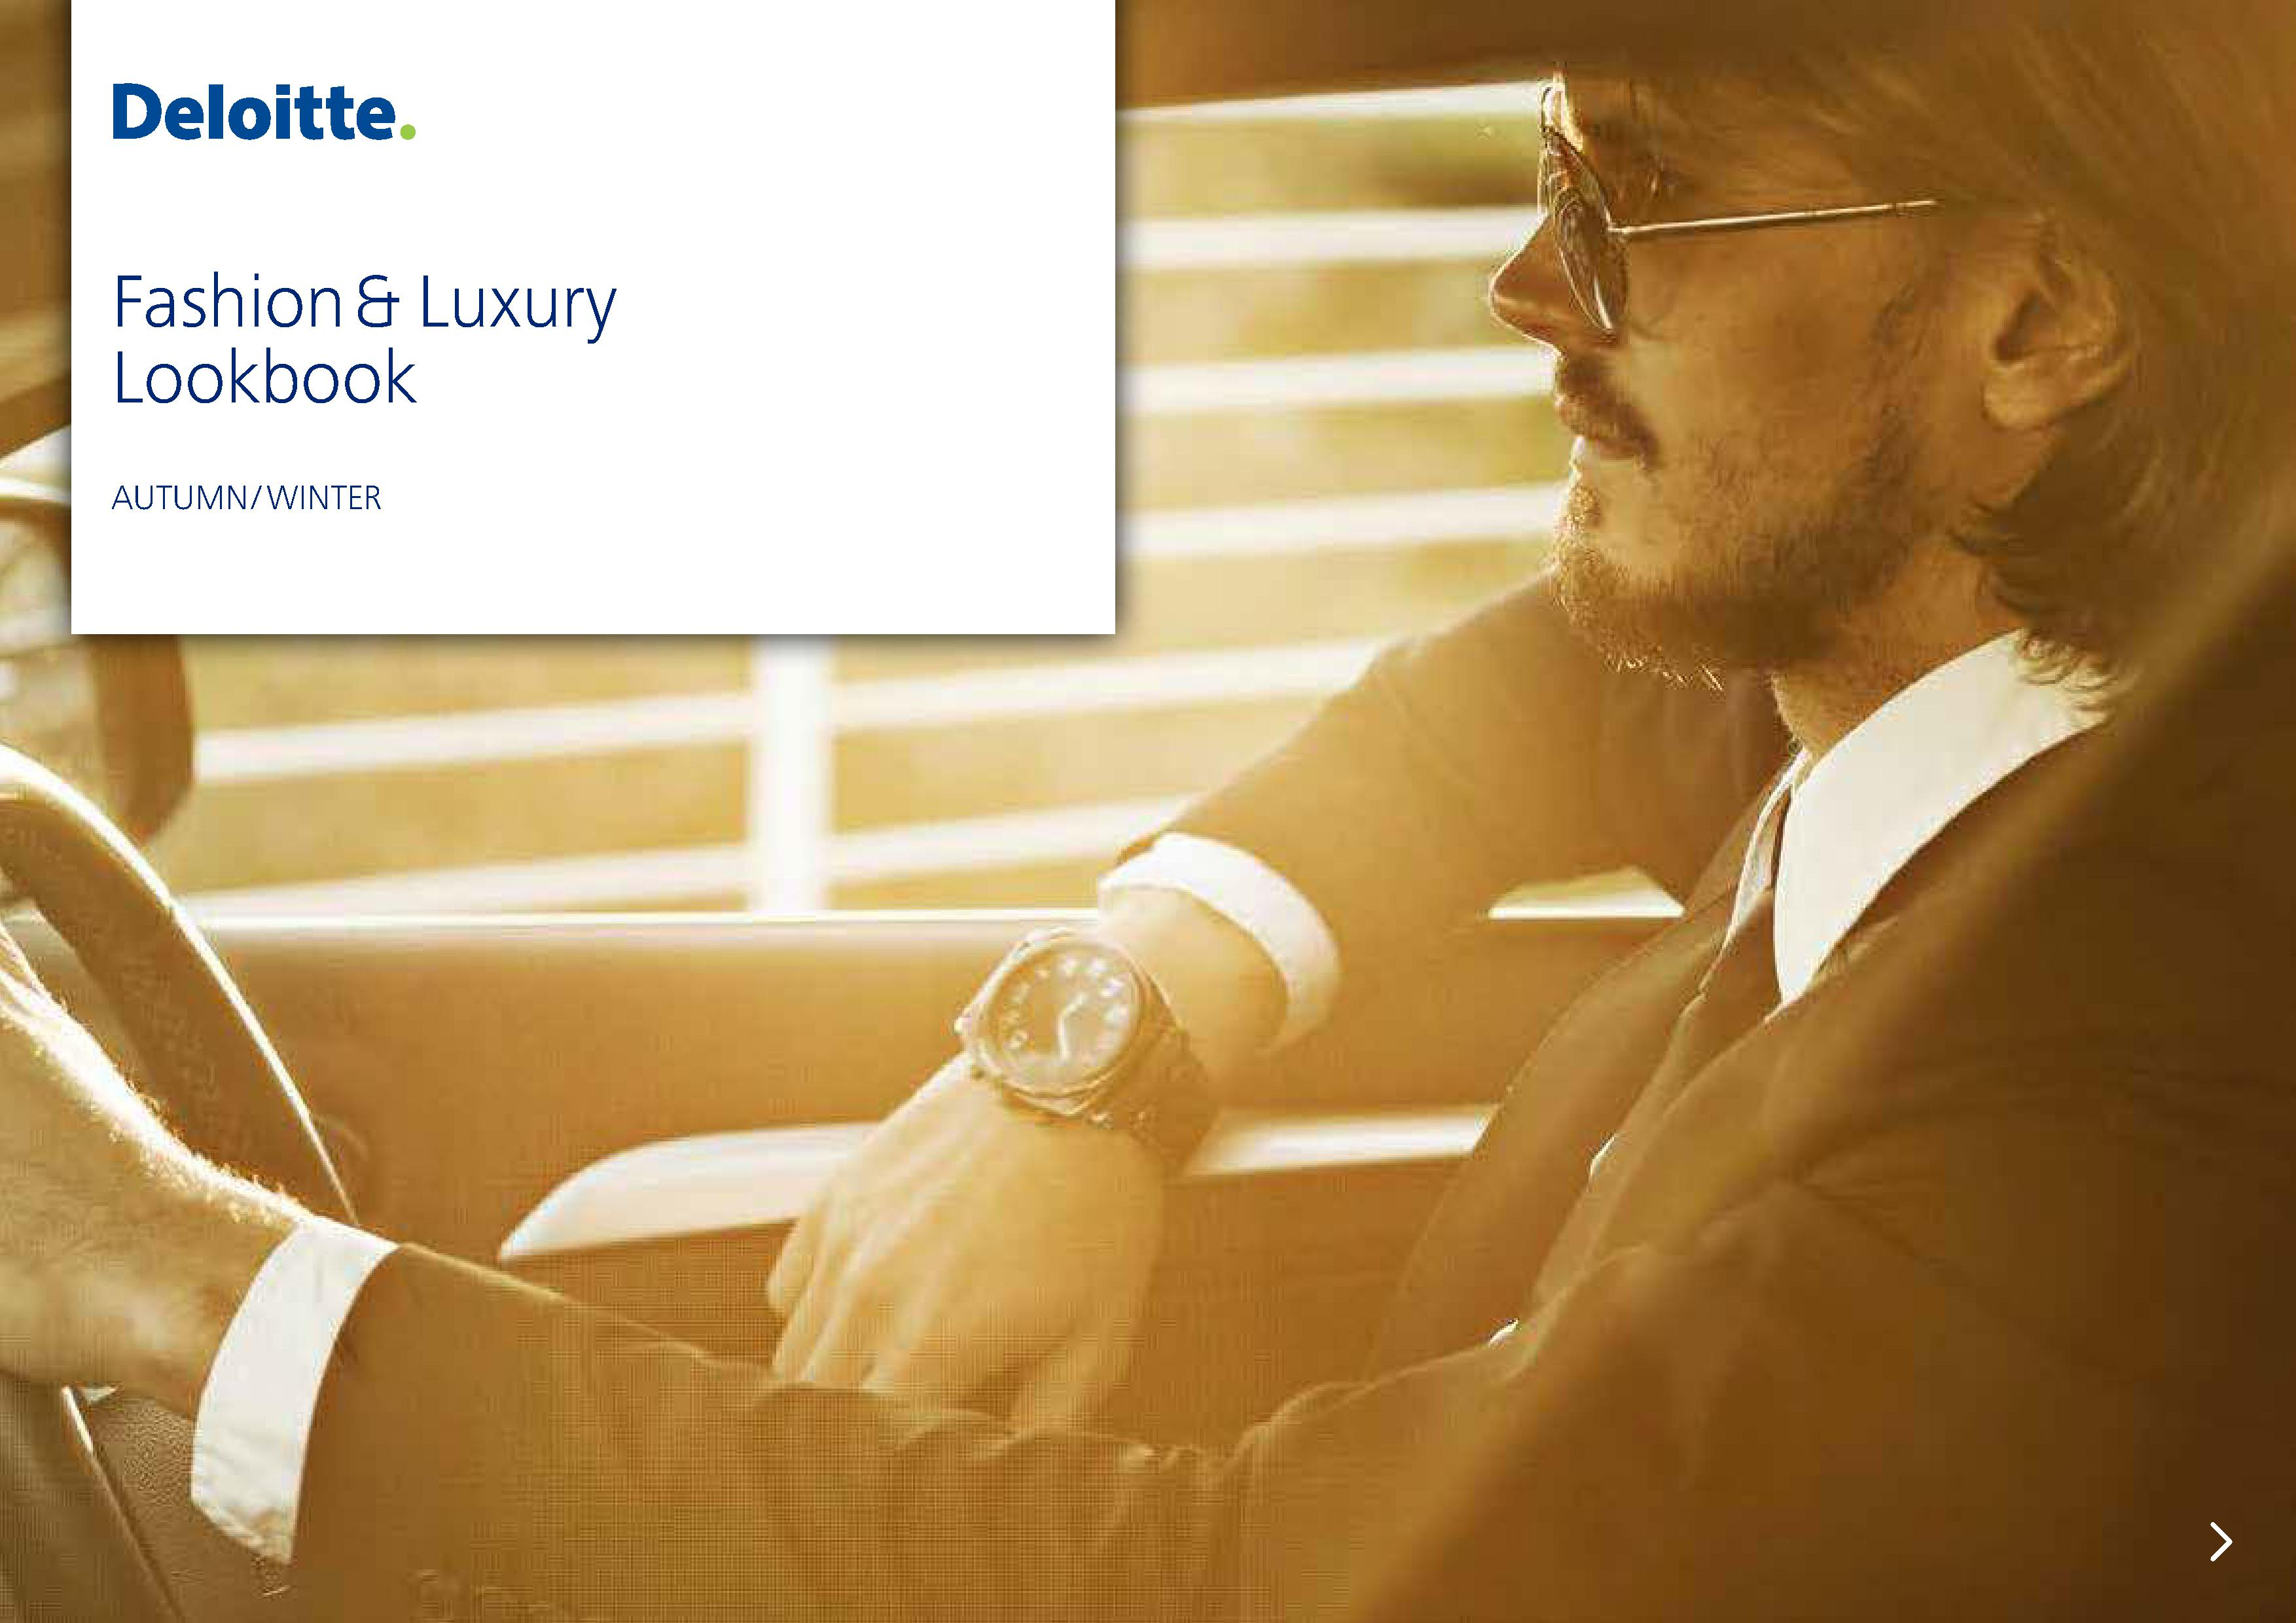 management and luxury goods Apply for luxury jobs on guardian jobs find luxury vacancies available to apply for, working full time or part time.